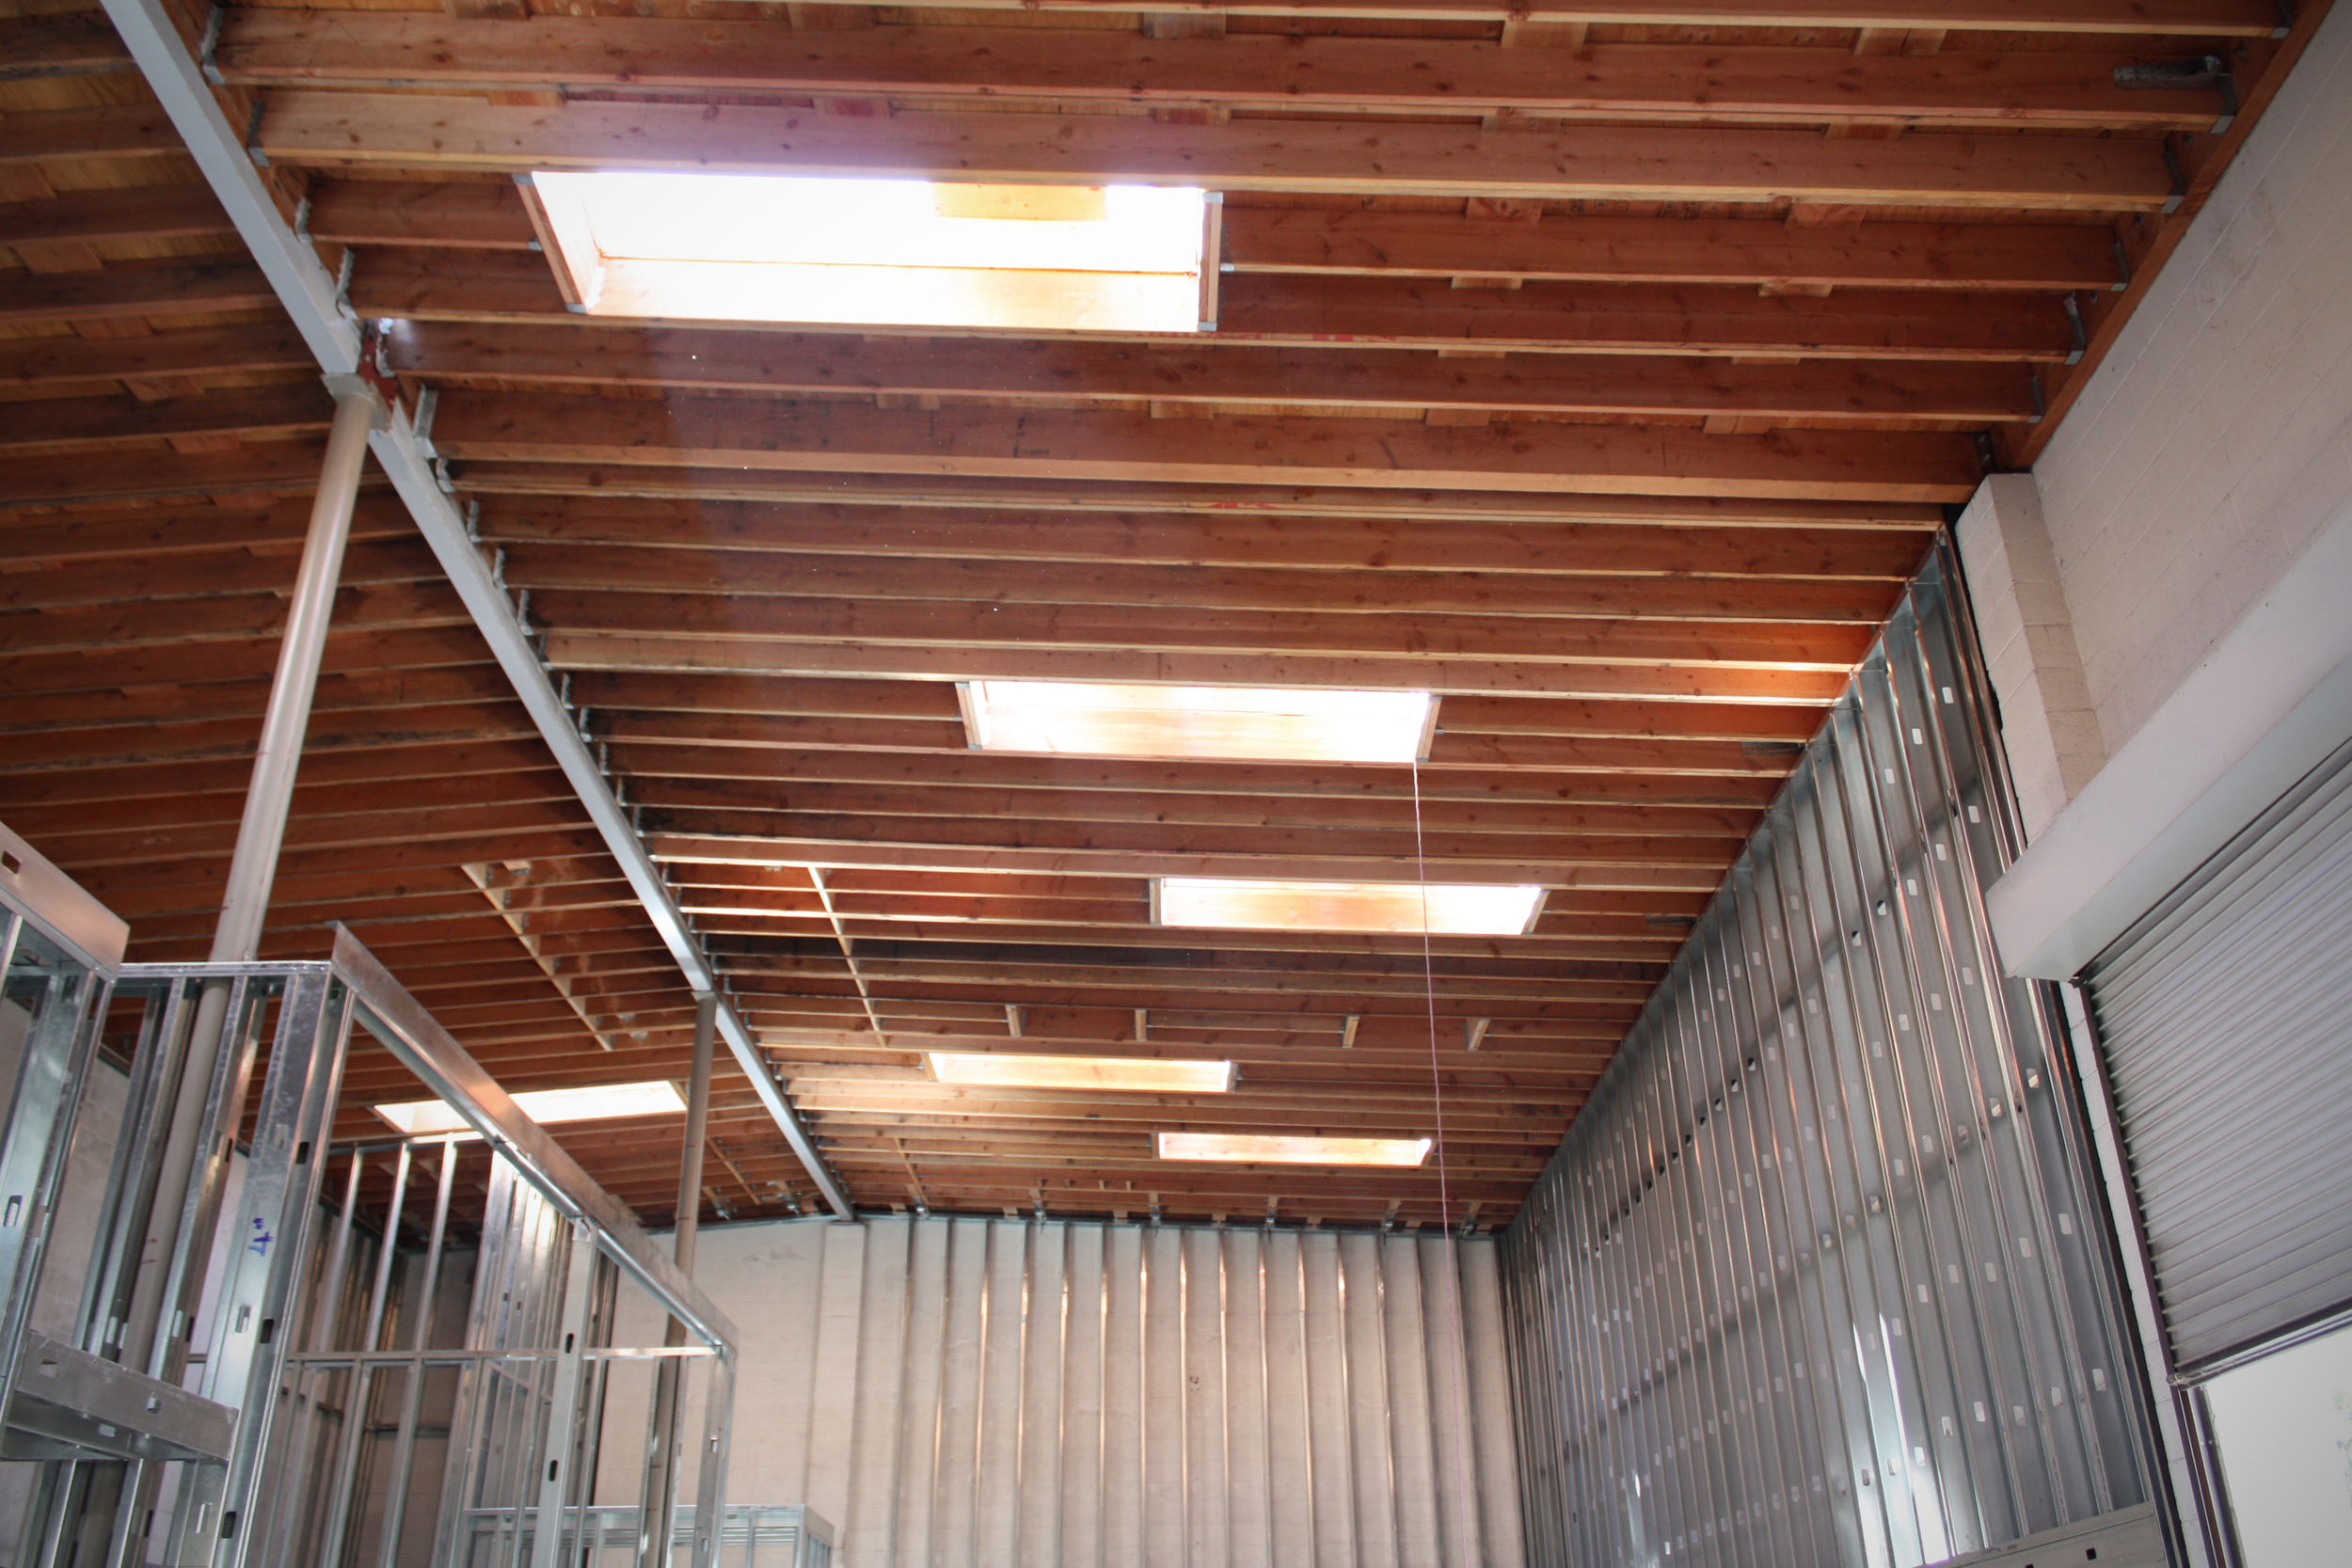 New skylights bring ample light into the space.